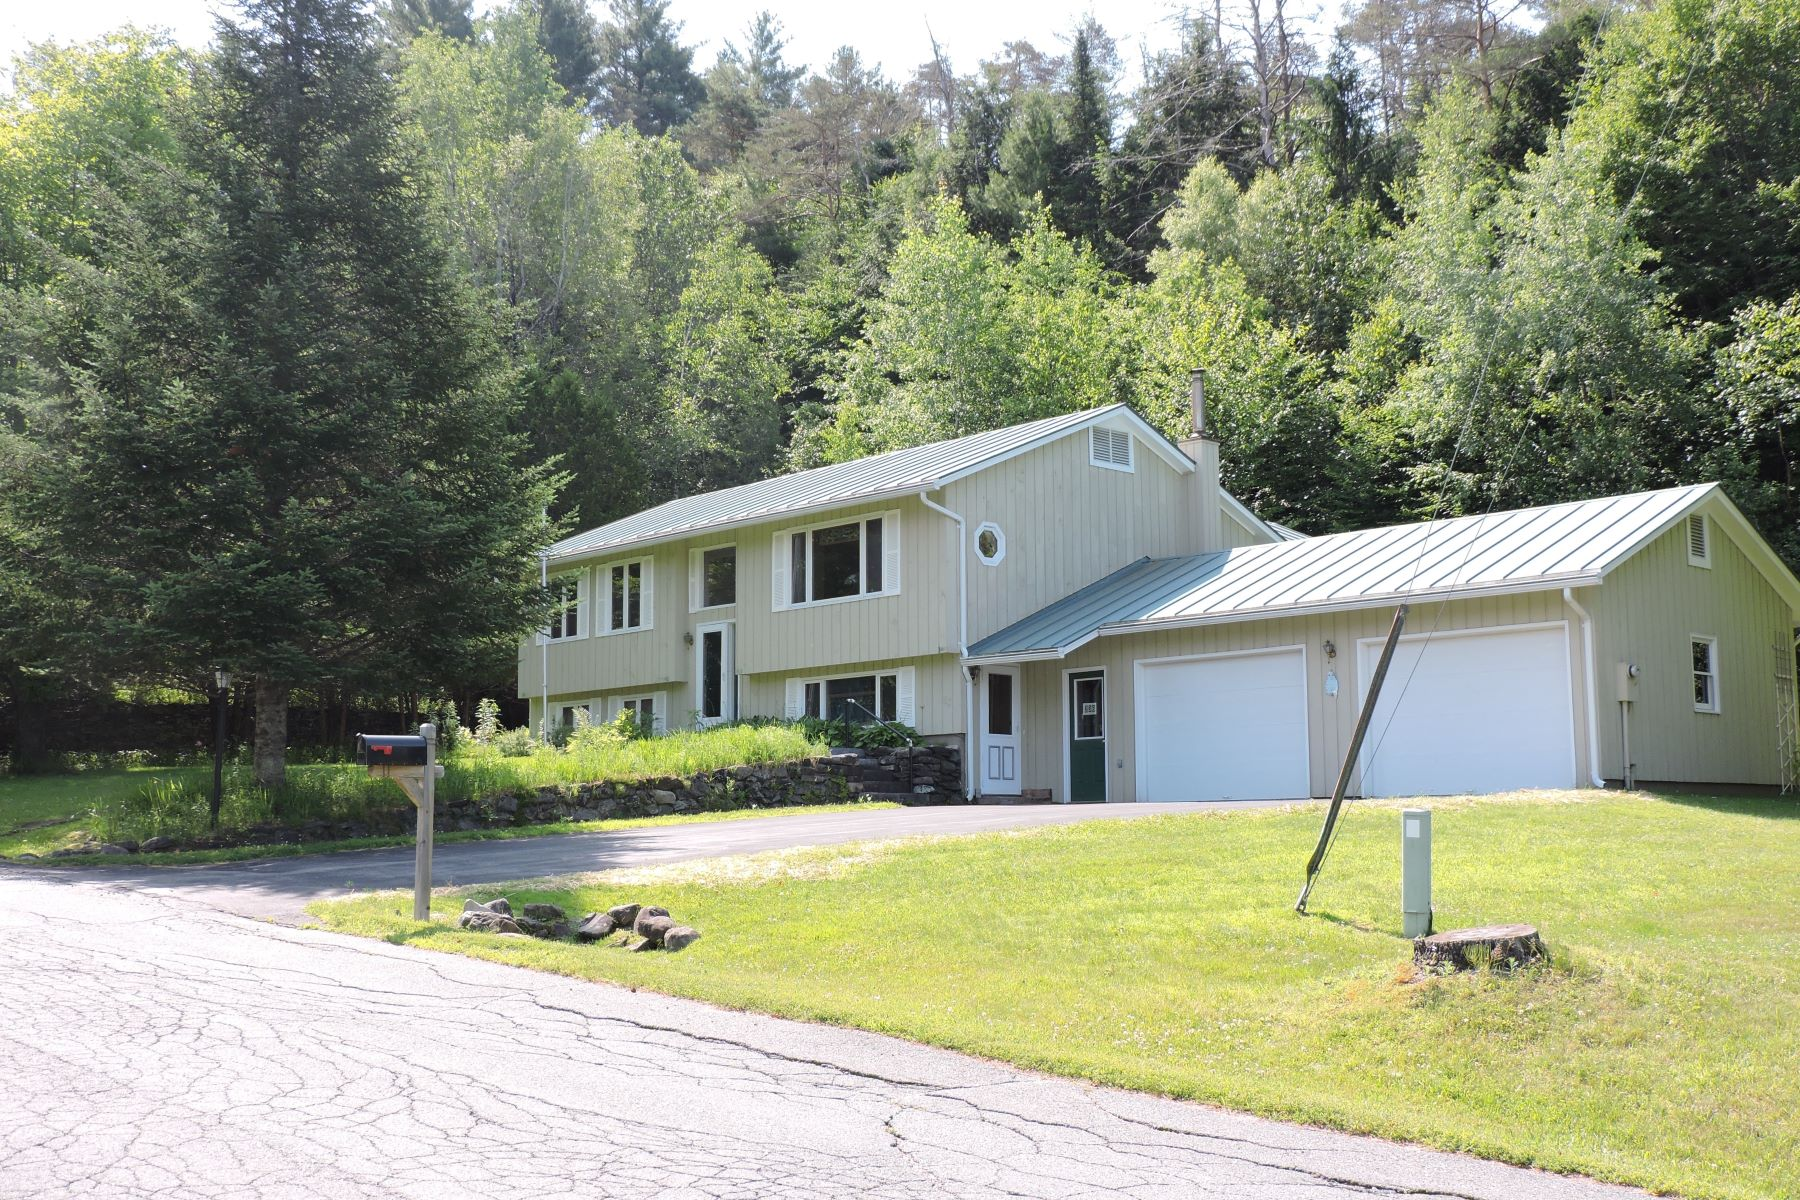 Single Family Homes for Sale at 236 Farmer Drive, St. Johnsbury 236 Farmer Dr St. Johnsbury, Vermont 05819 United States